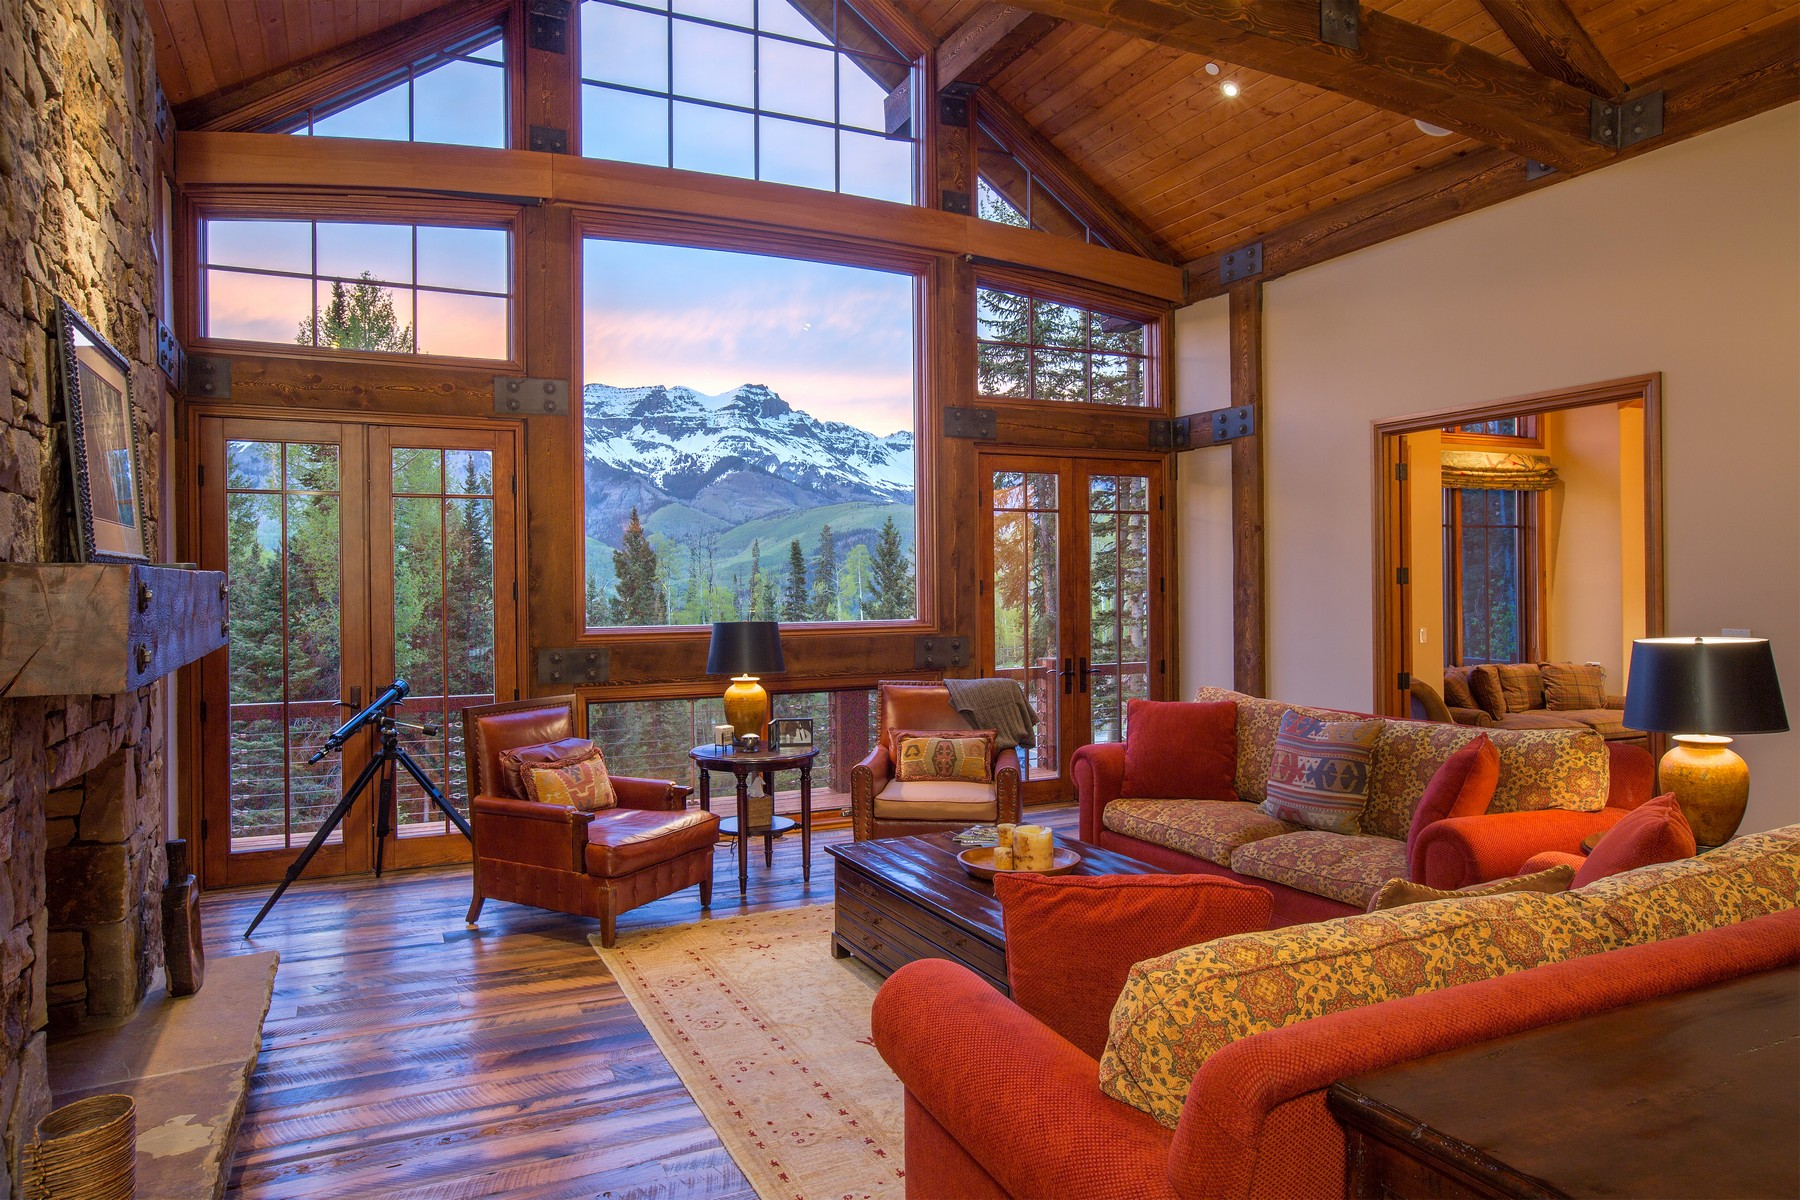 Single Family Home for Sale at 159 Benchmark Mountain Village, Telluride, Colorado, 81435 United States